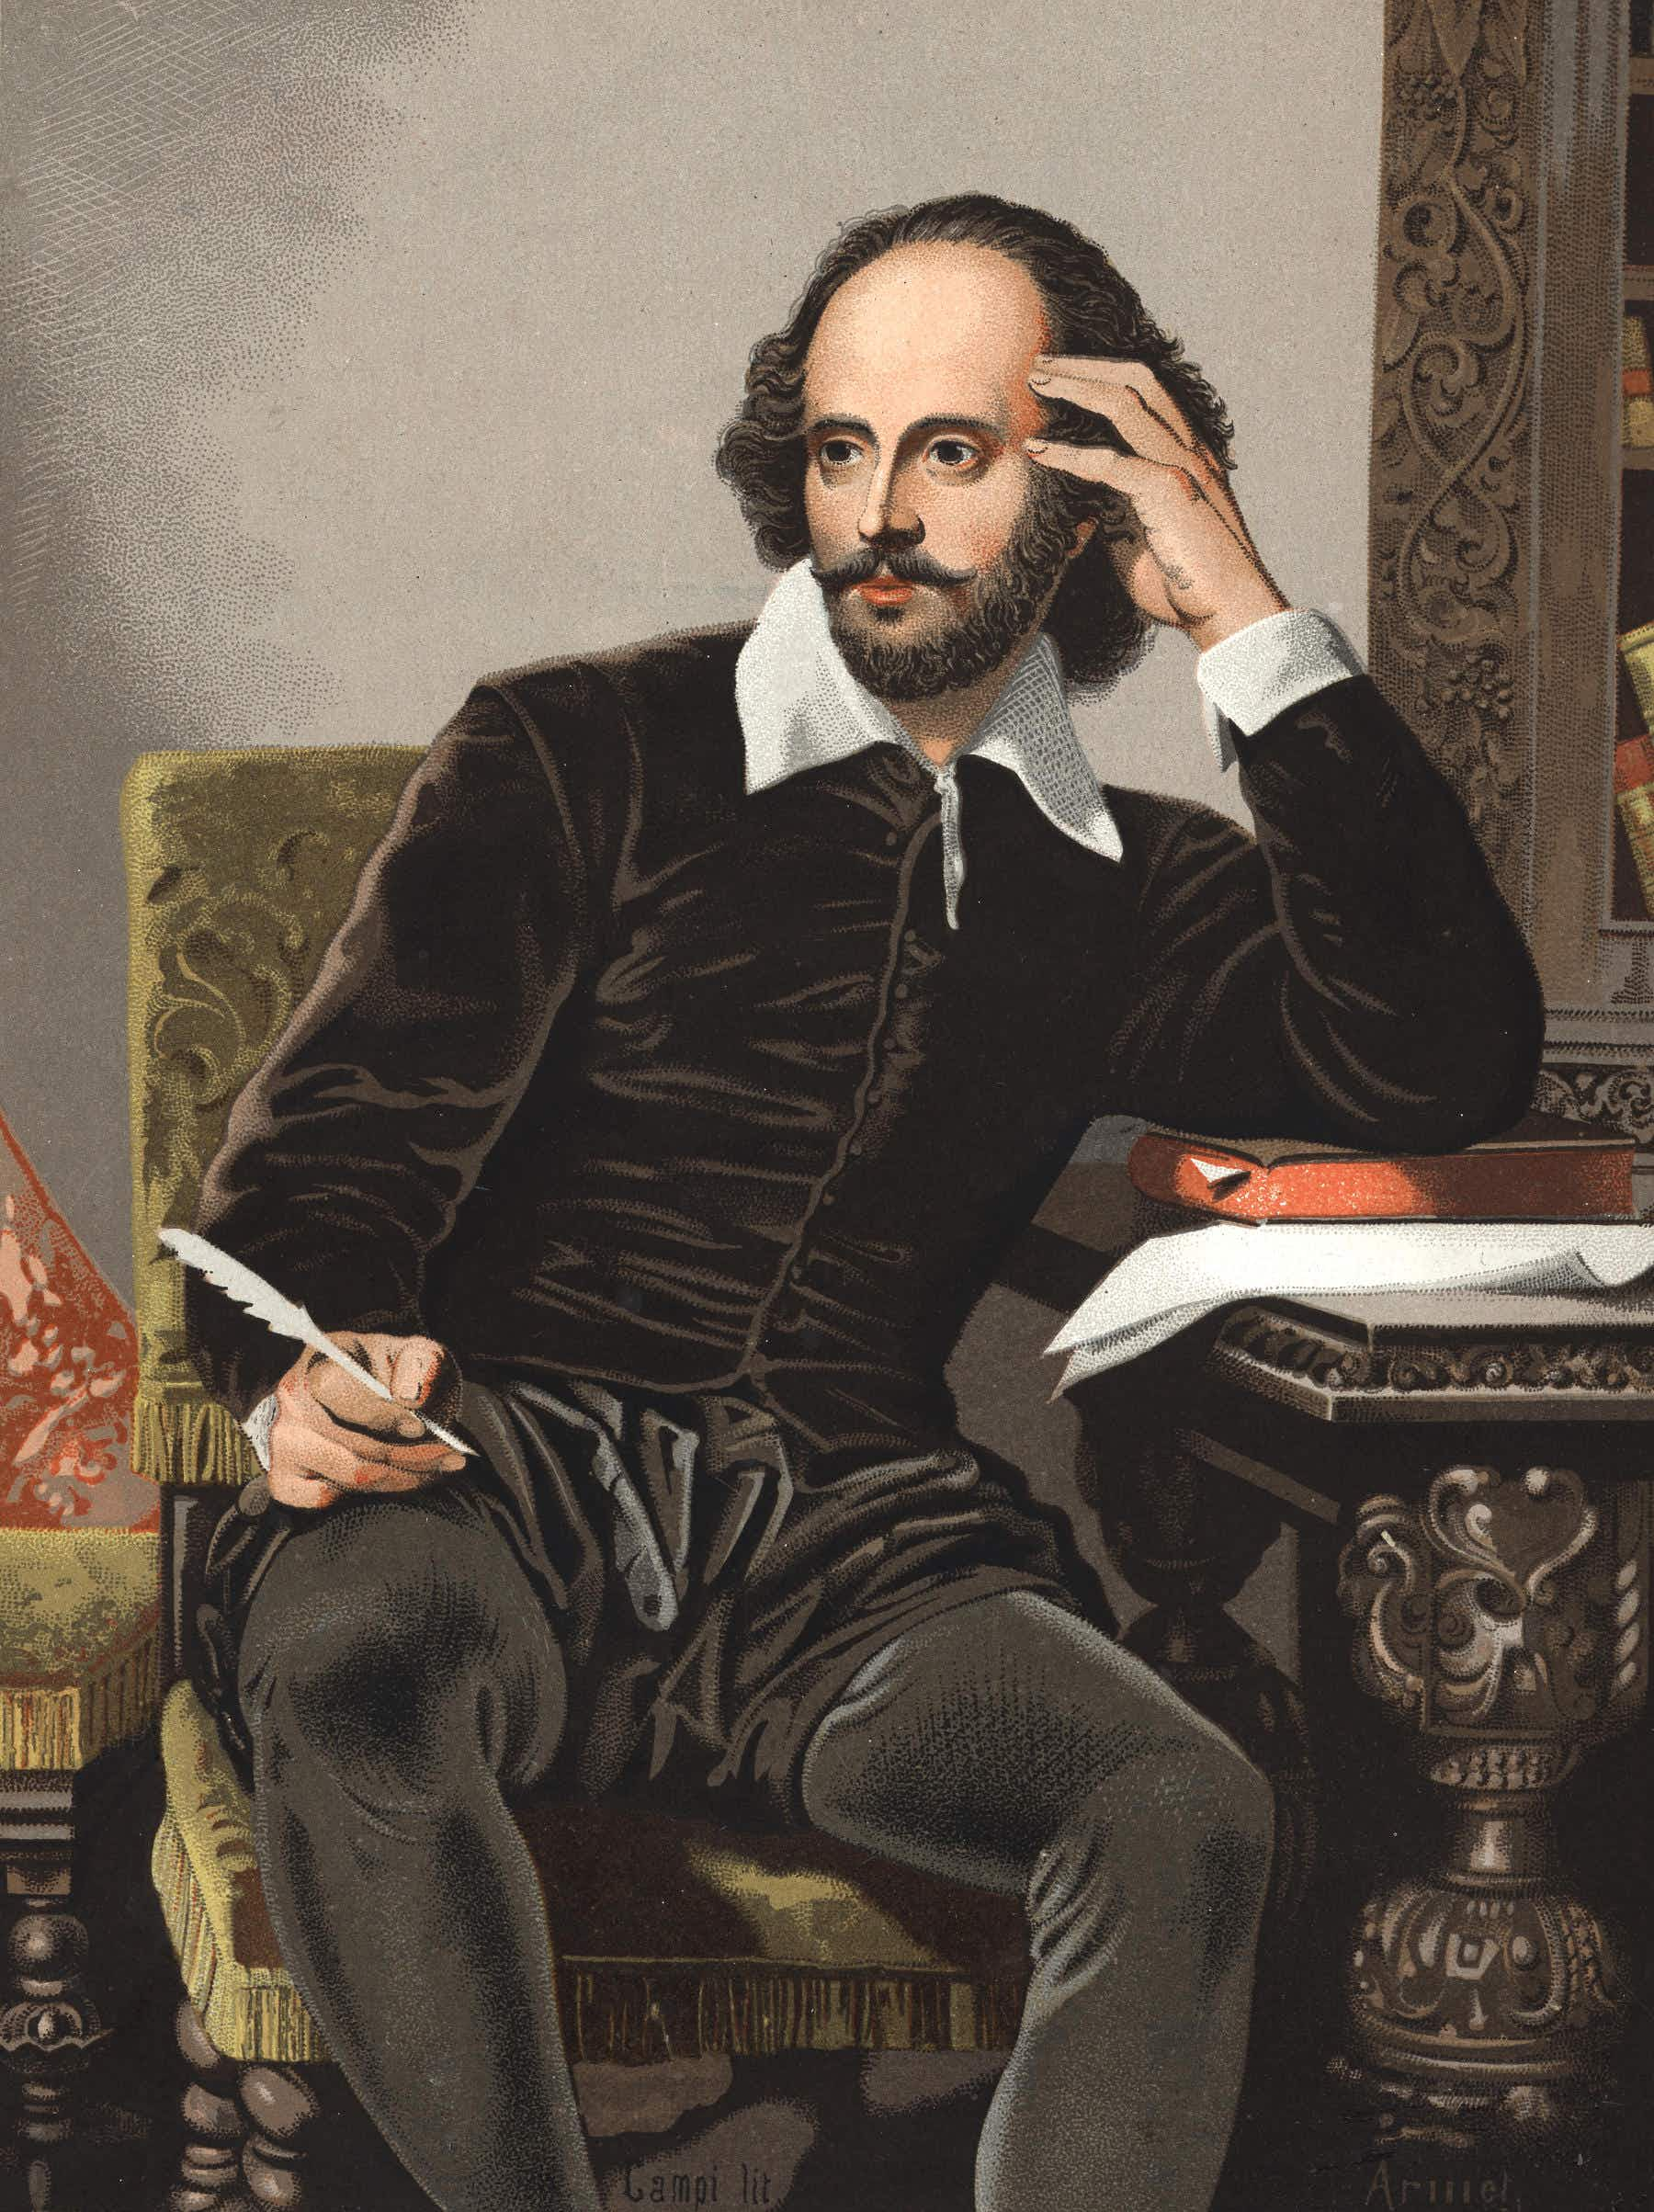 Statue honouring William Shakespeare in Moscow gets seal of approval